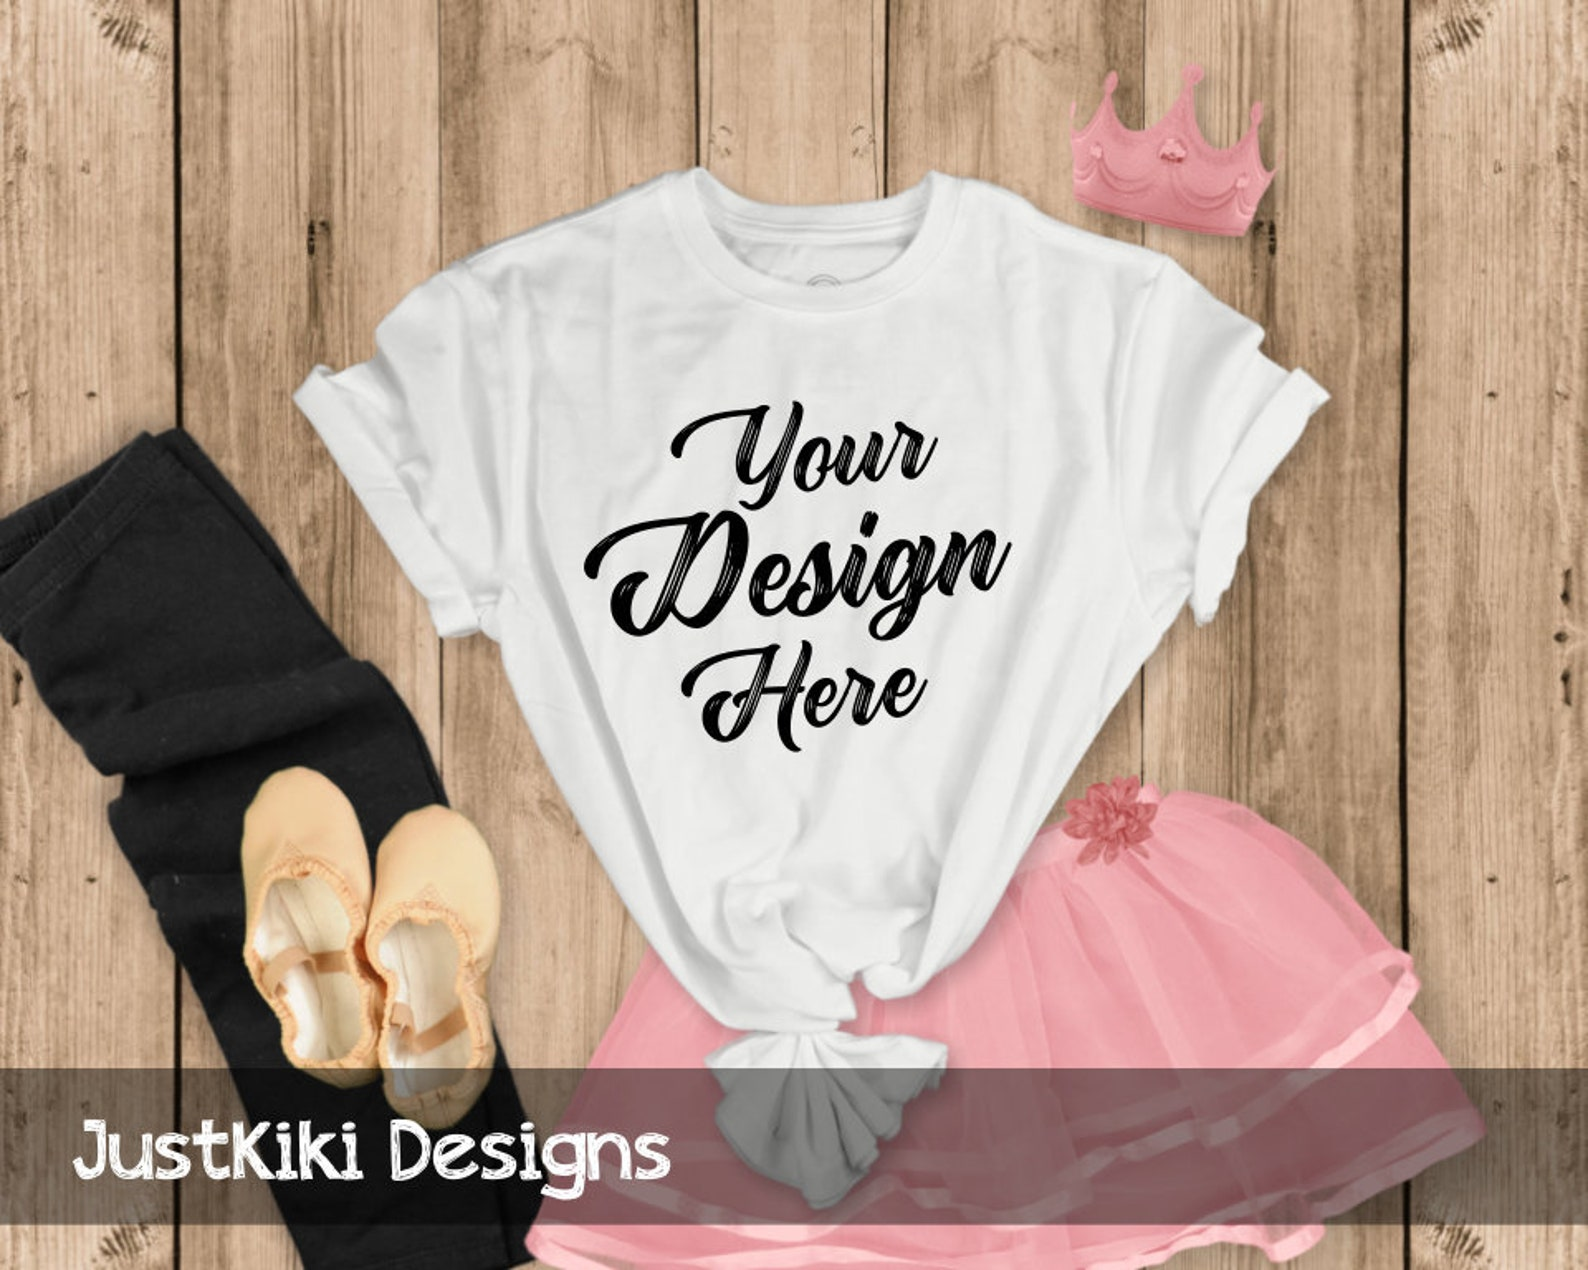 t-shirt mockup - flat lay t shirt - womans t shirt mockup - wood background, white tshirt, pink ballet skirt and shoes, black le